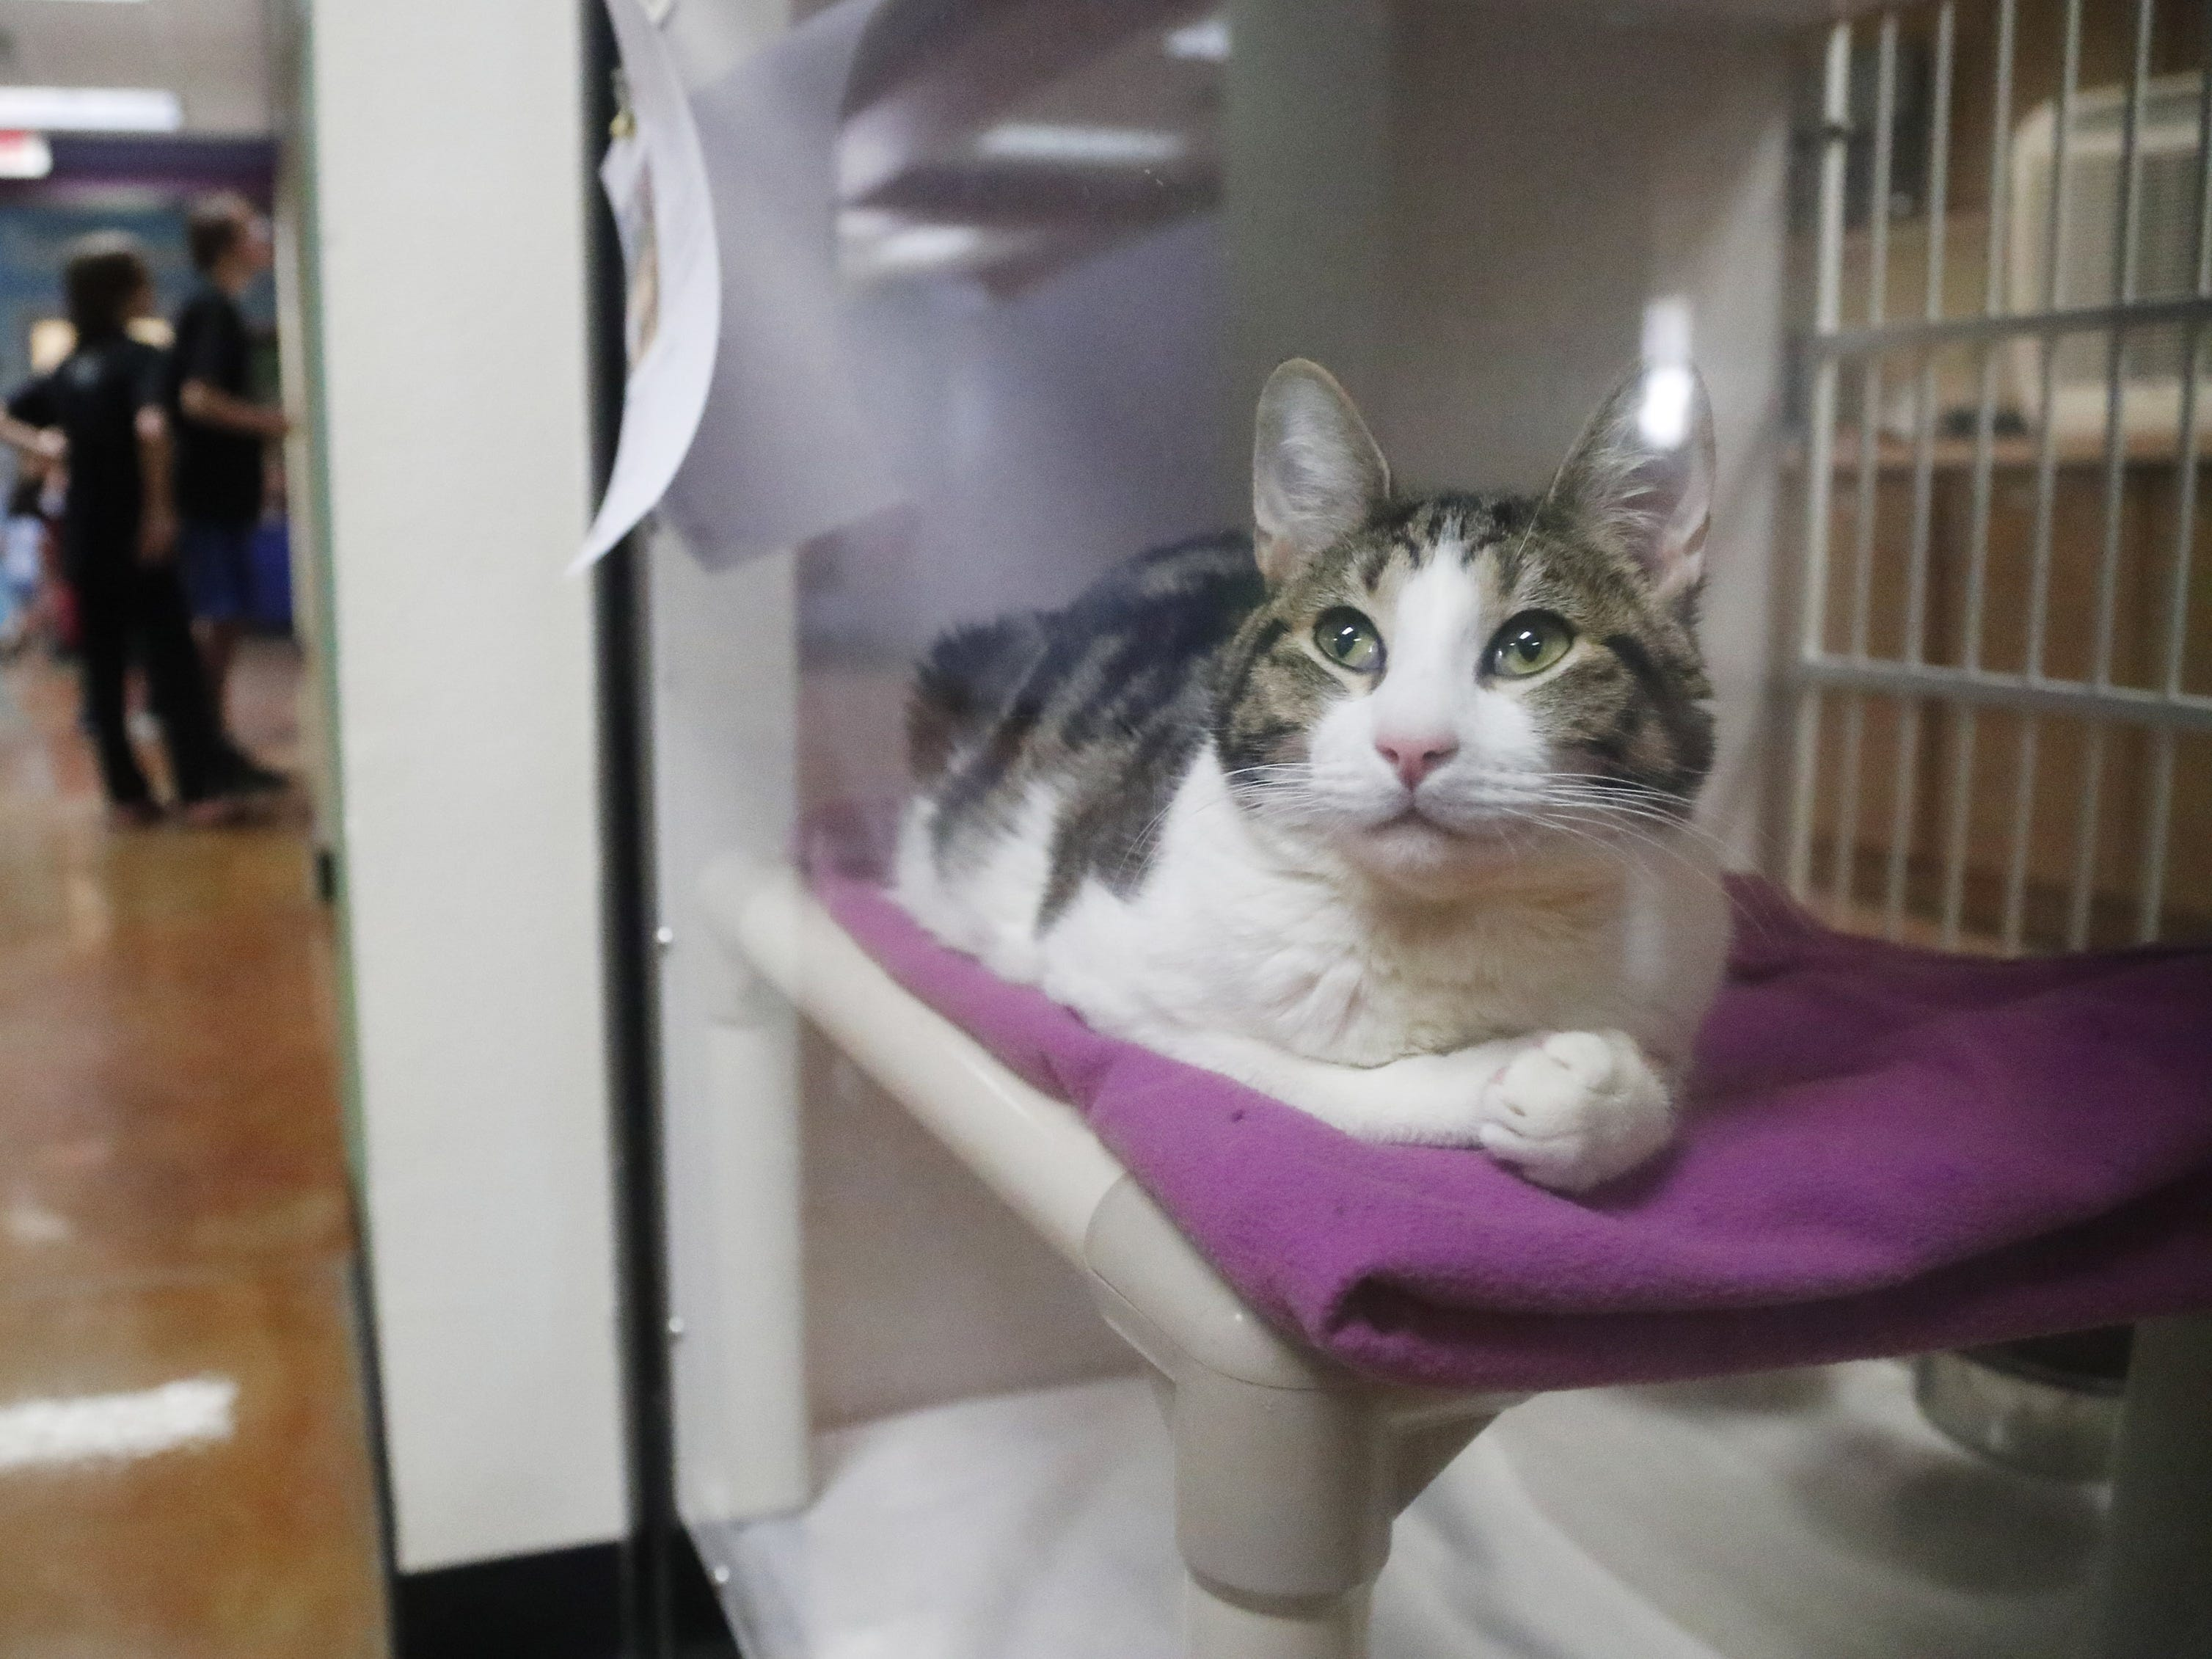 Cooper, a domestic shorthair, waits to be adopted at the Arizona Humane Society in Phoenix on April 1, 2019. More than 8,000 dogs and cats have been surrendered in Maricopa County since the start of the year.